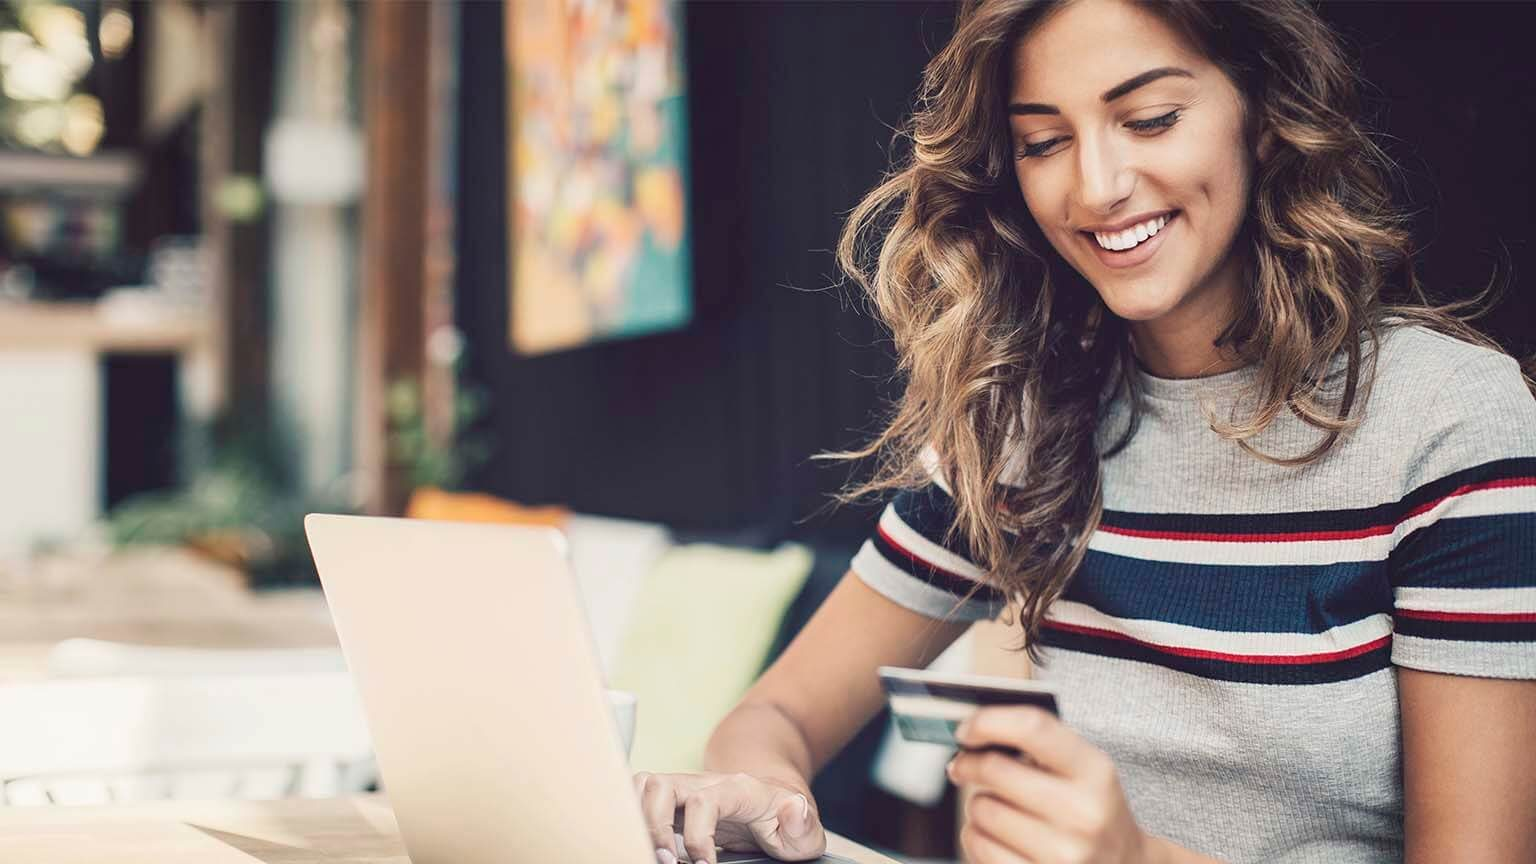 Smiling young woman holding a debit card and typing on a laptop